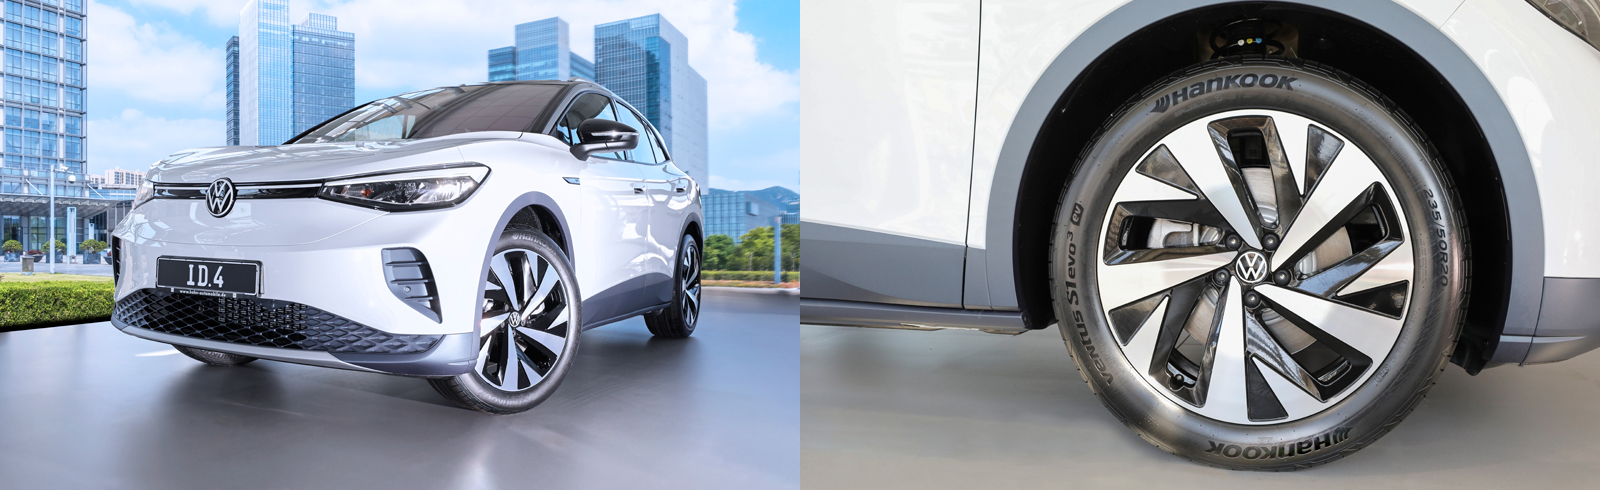 Hankook will be the tire supplier for the Volkswagen ID.4